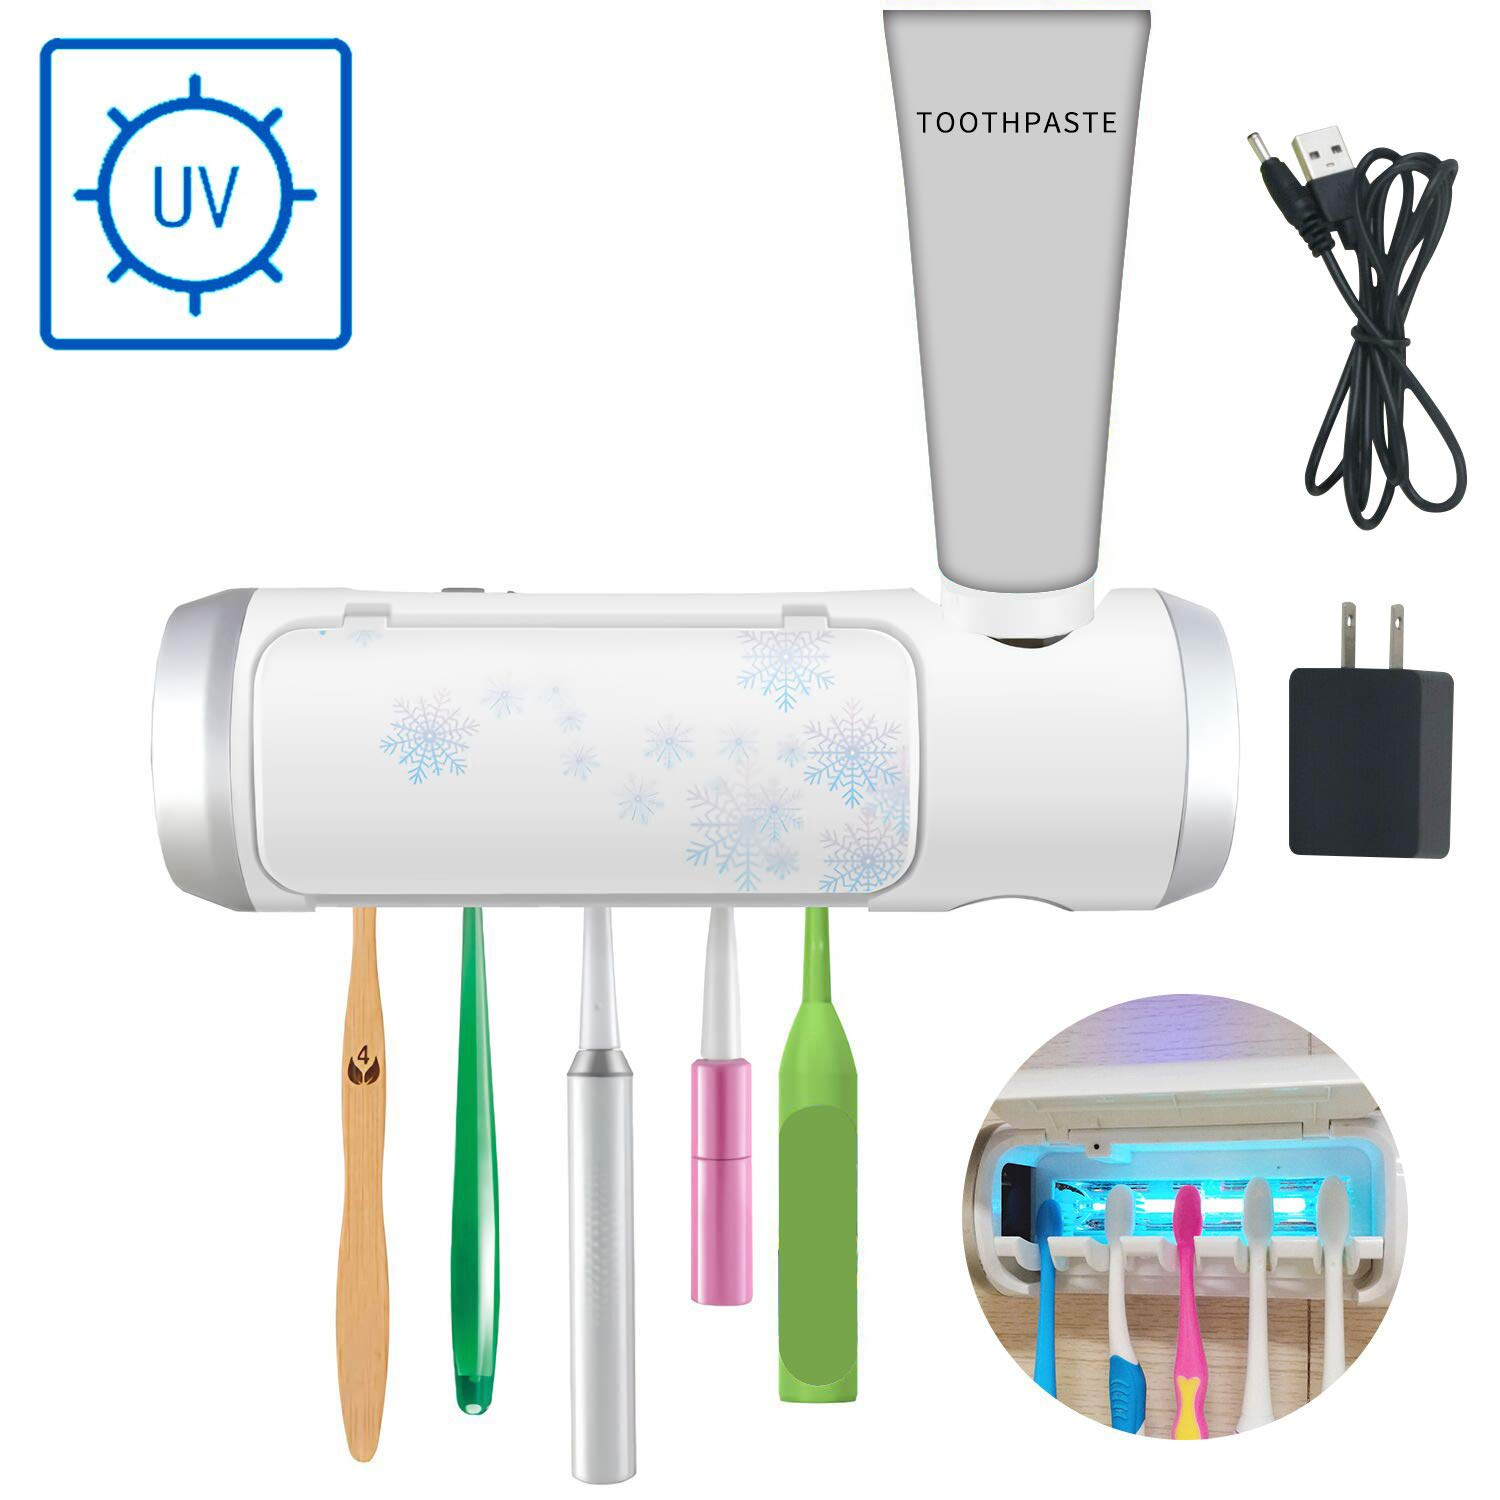 Toothbrush Sterilization Toothpaste Bathroom Toothbrushes